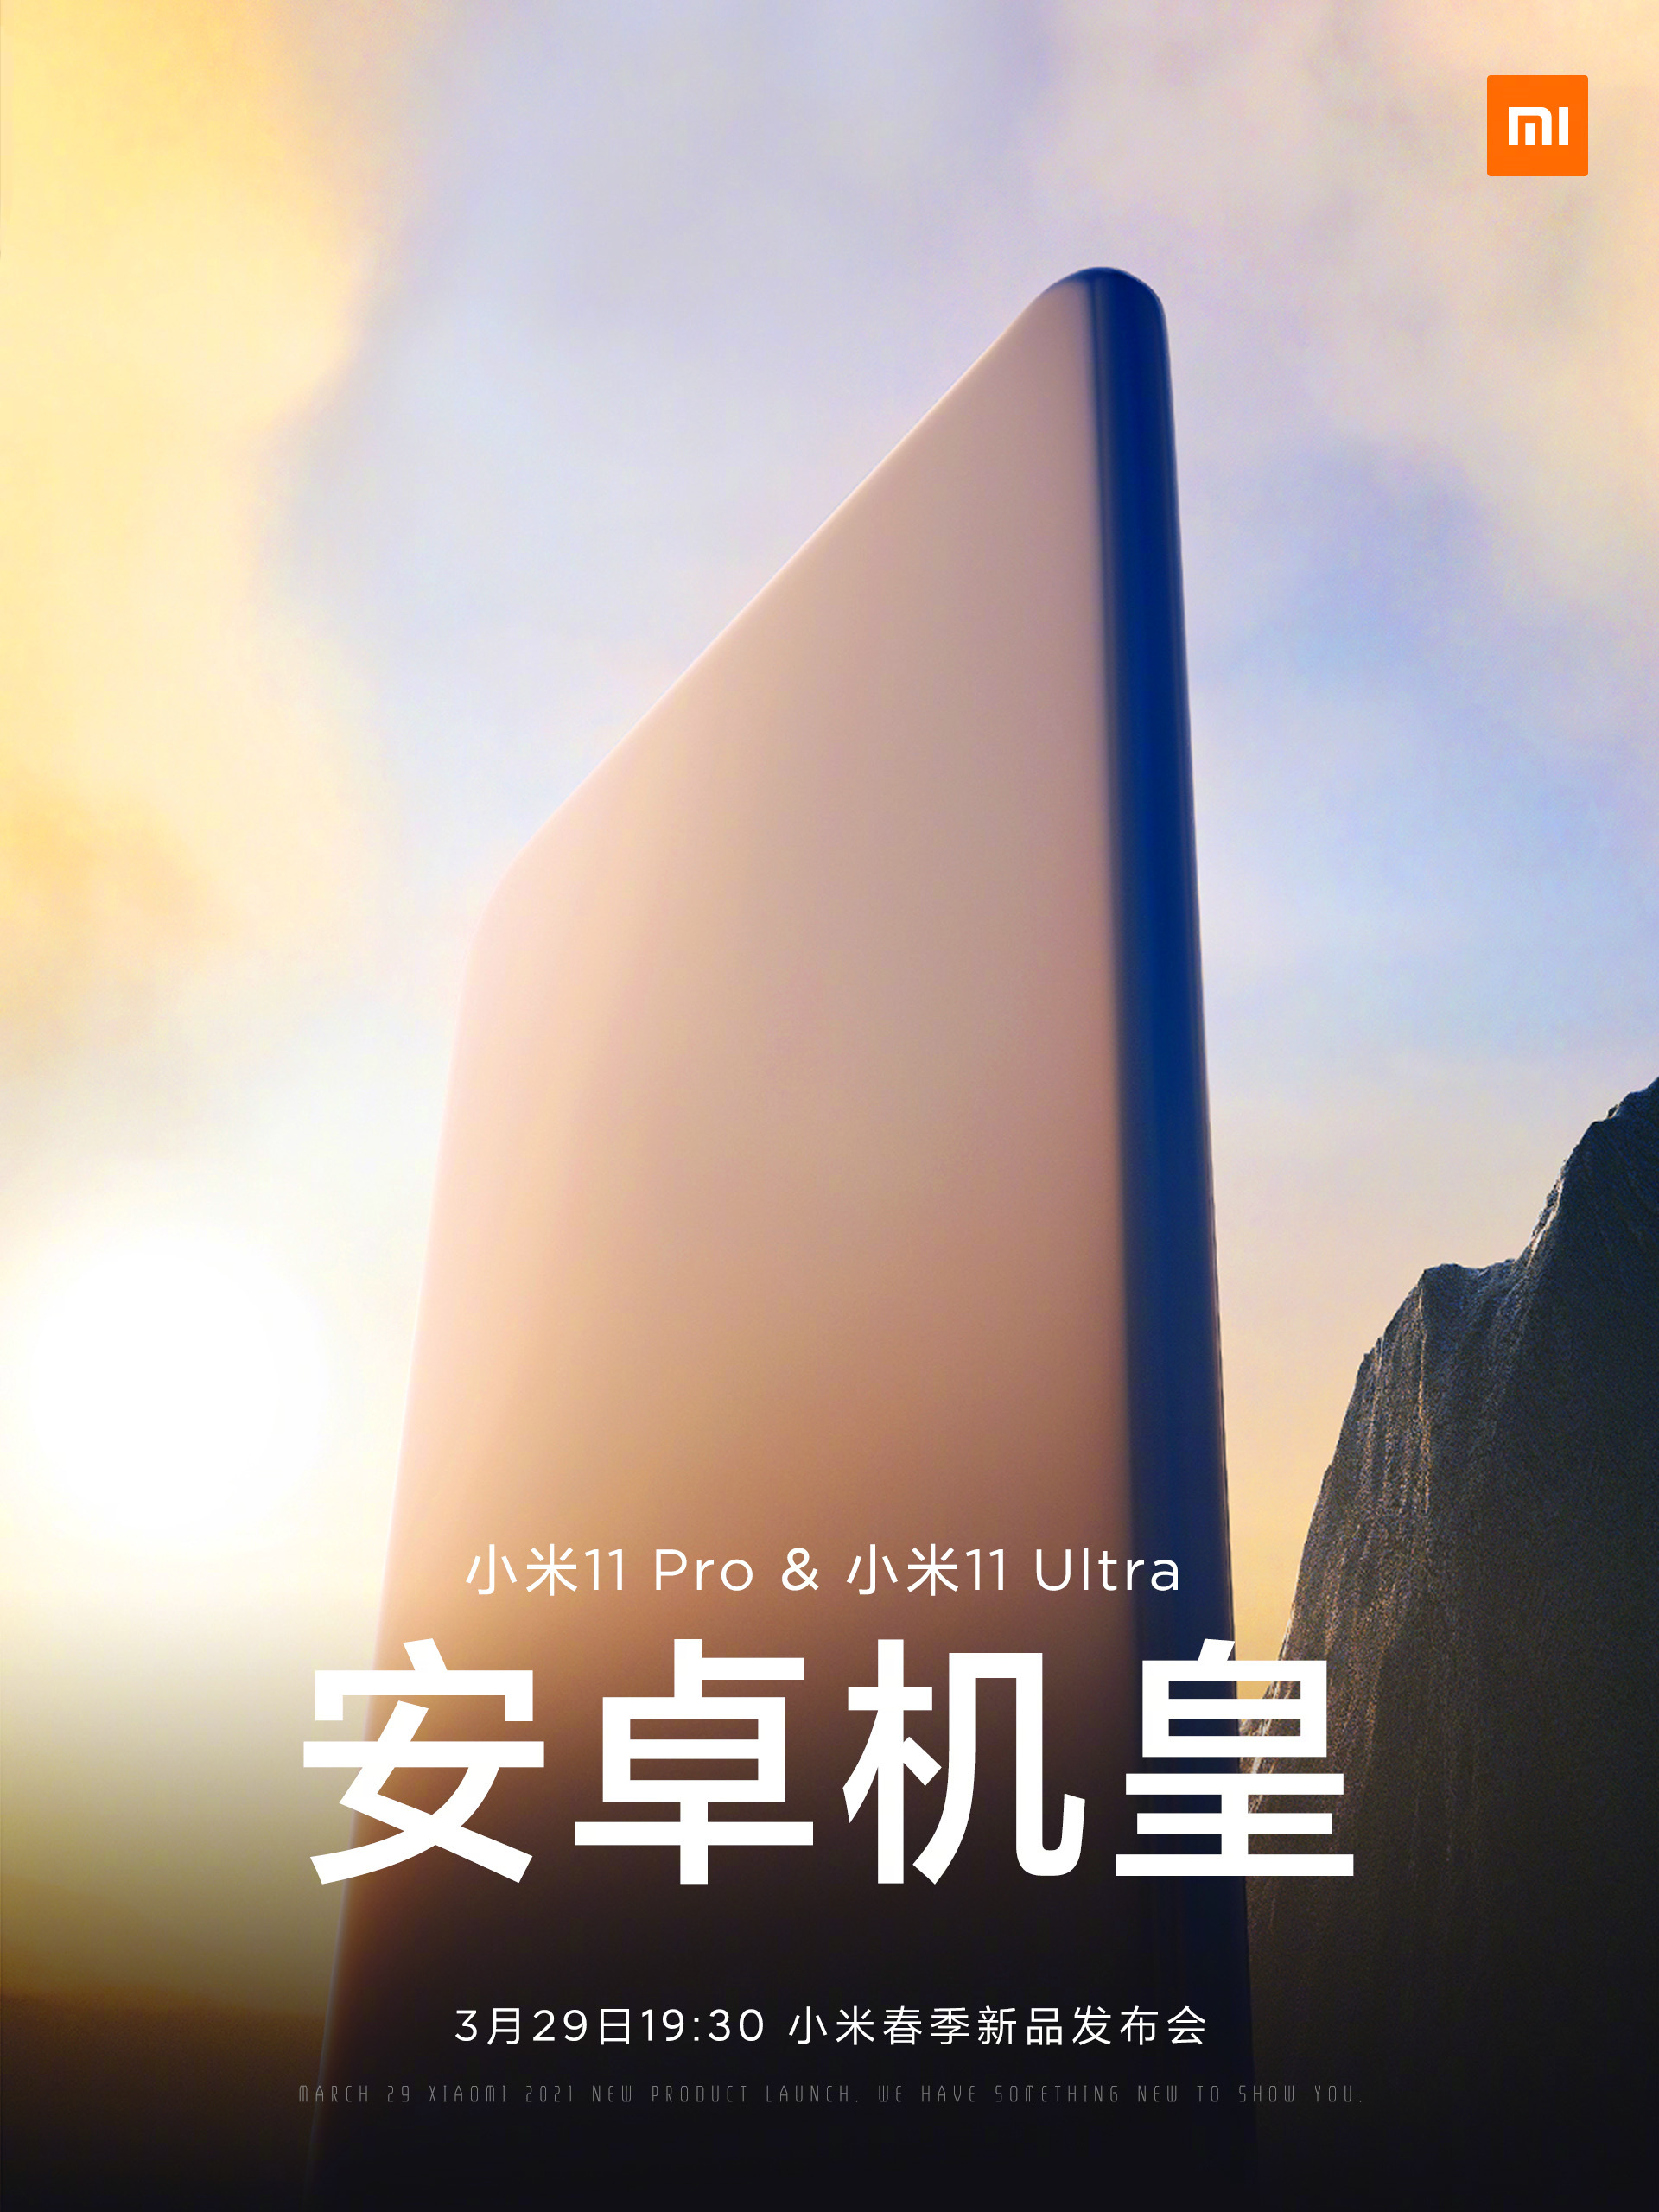 The Xiaomi Mi 11 Pro and Mi 11 Ultra will be presented this March 29. News Xiaomi